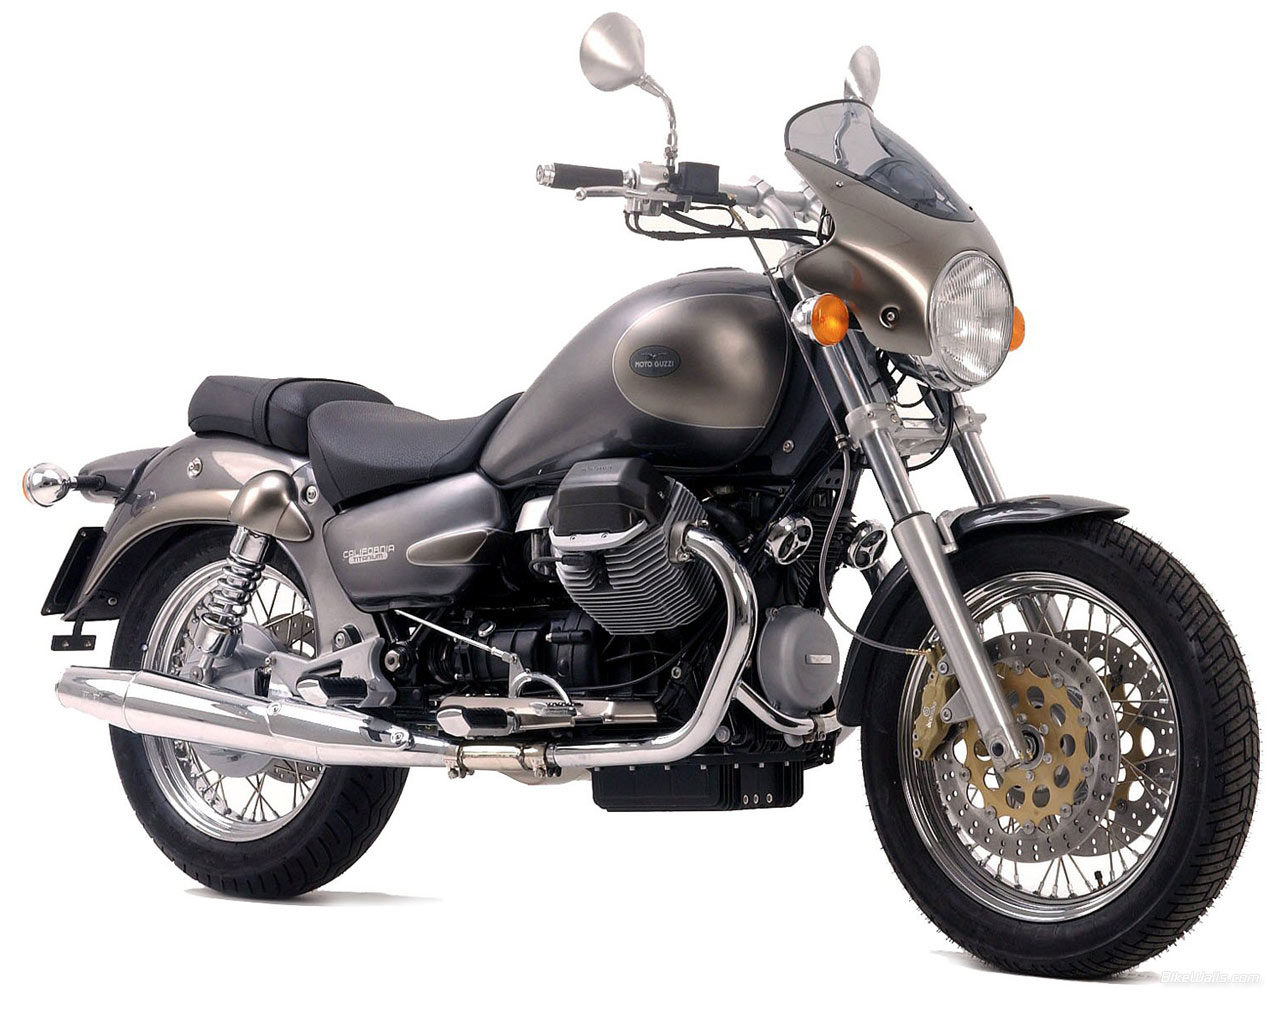 Moto Guzzi California 75 2000 images #108441